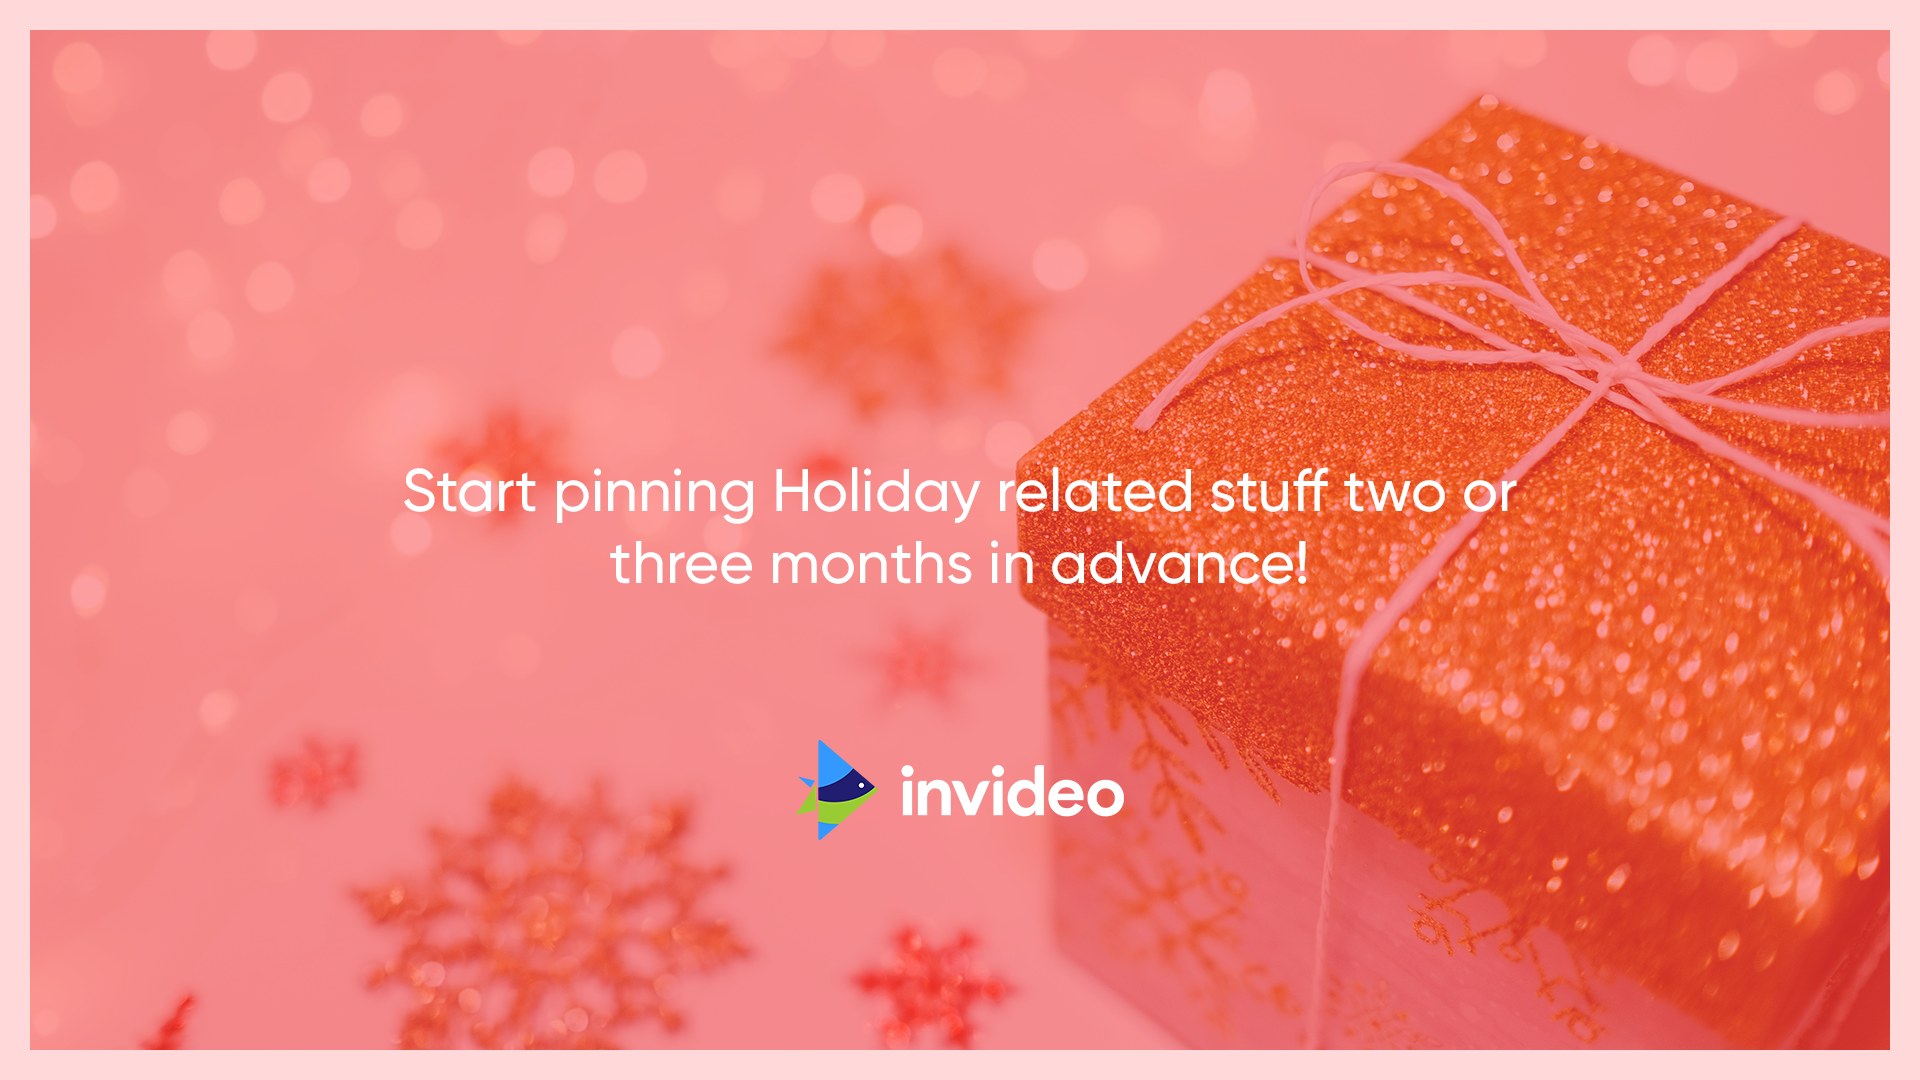 Advance Planning of Holiday Post - Pinterest